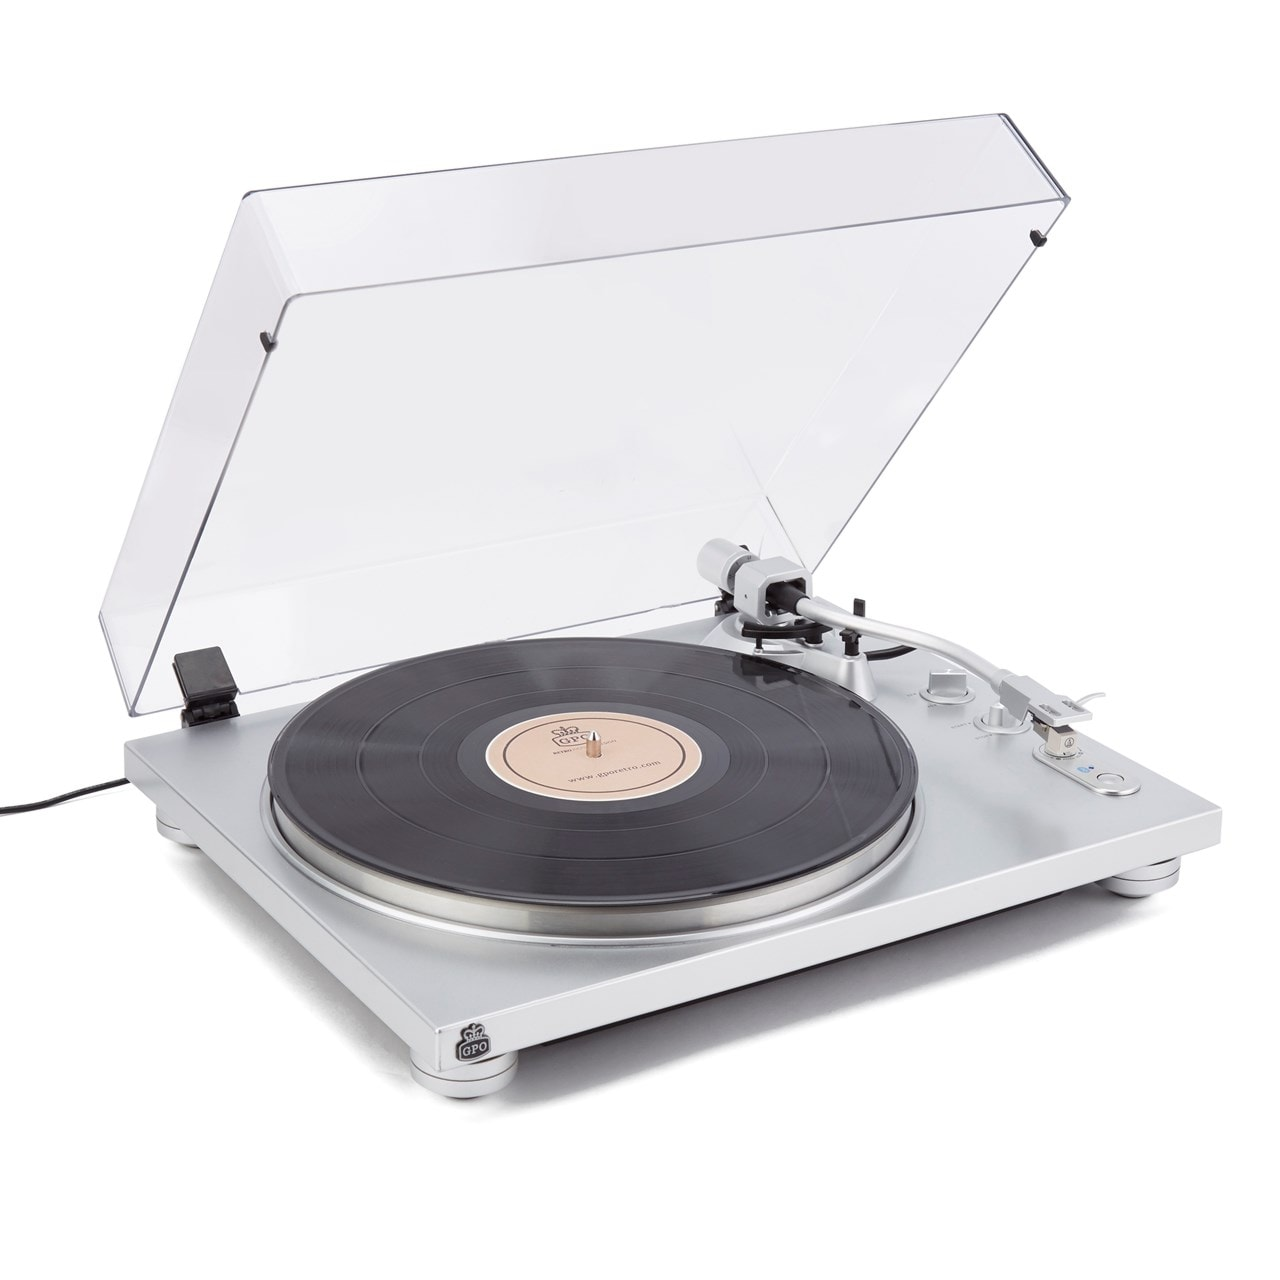 GPO PR100 Silver Turntable With PR200 CD Player and Speakers - 2